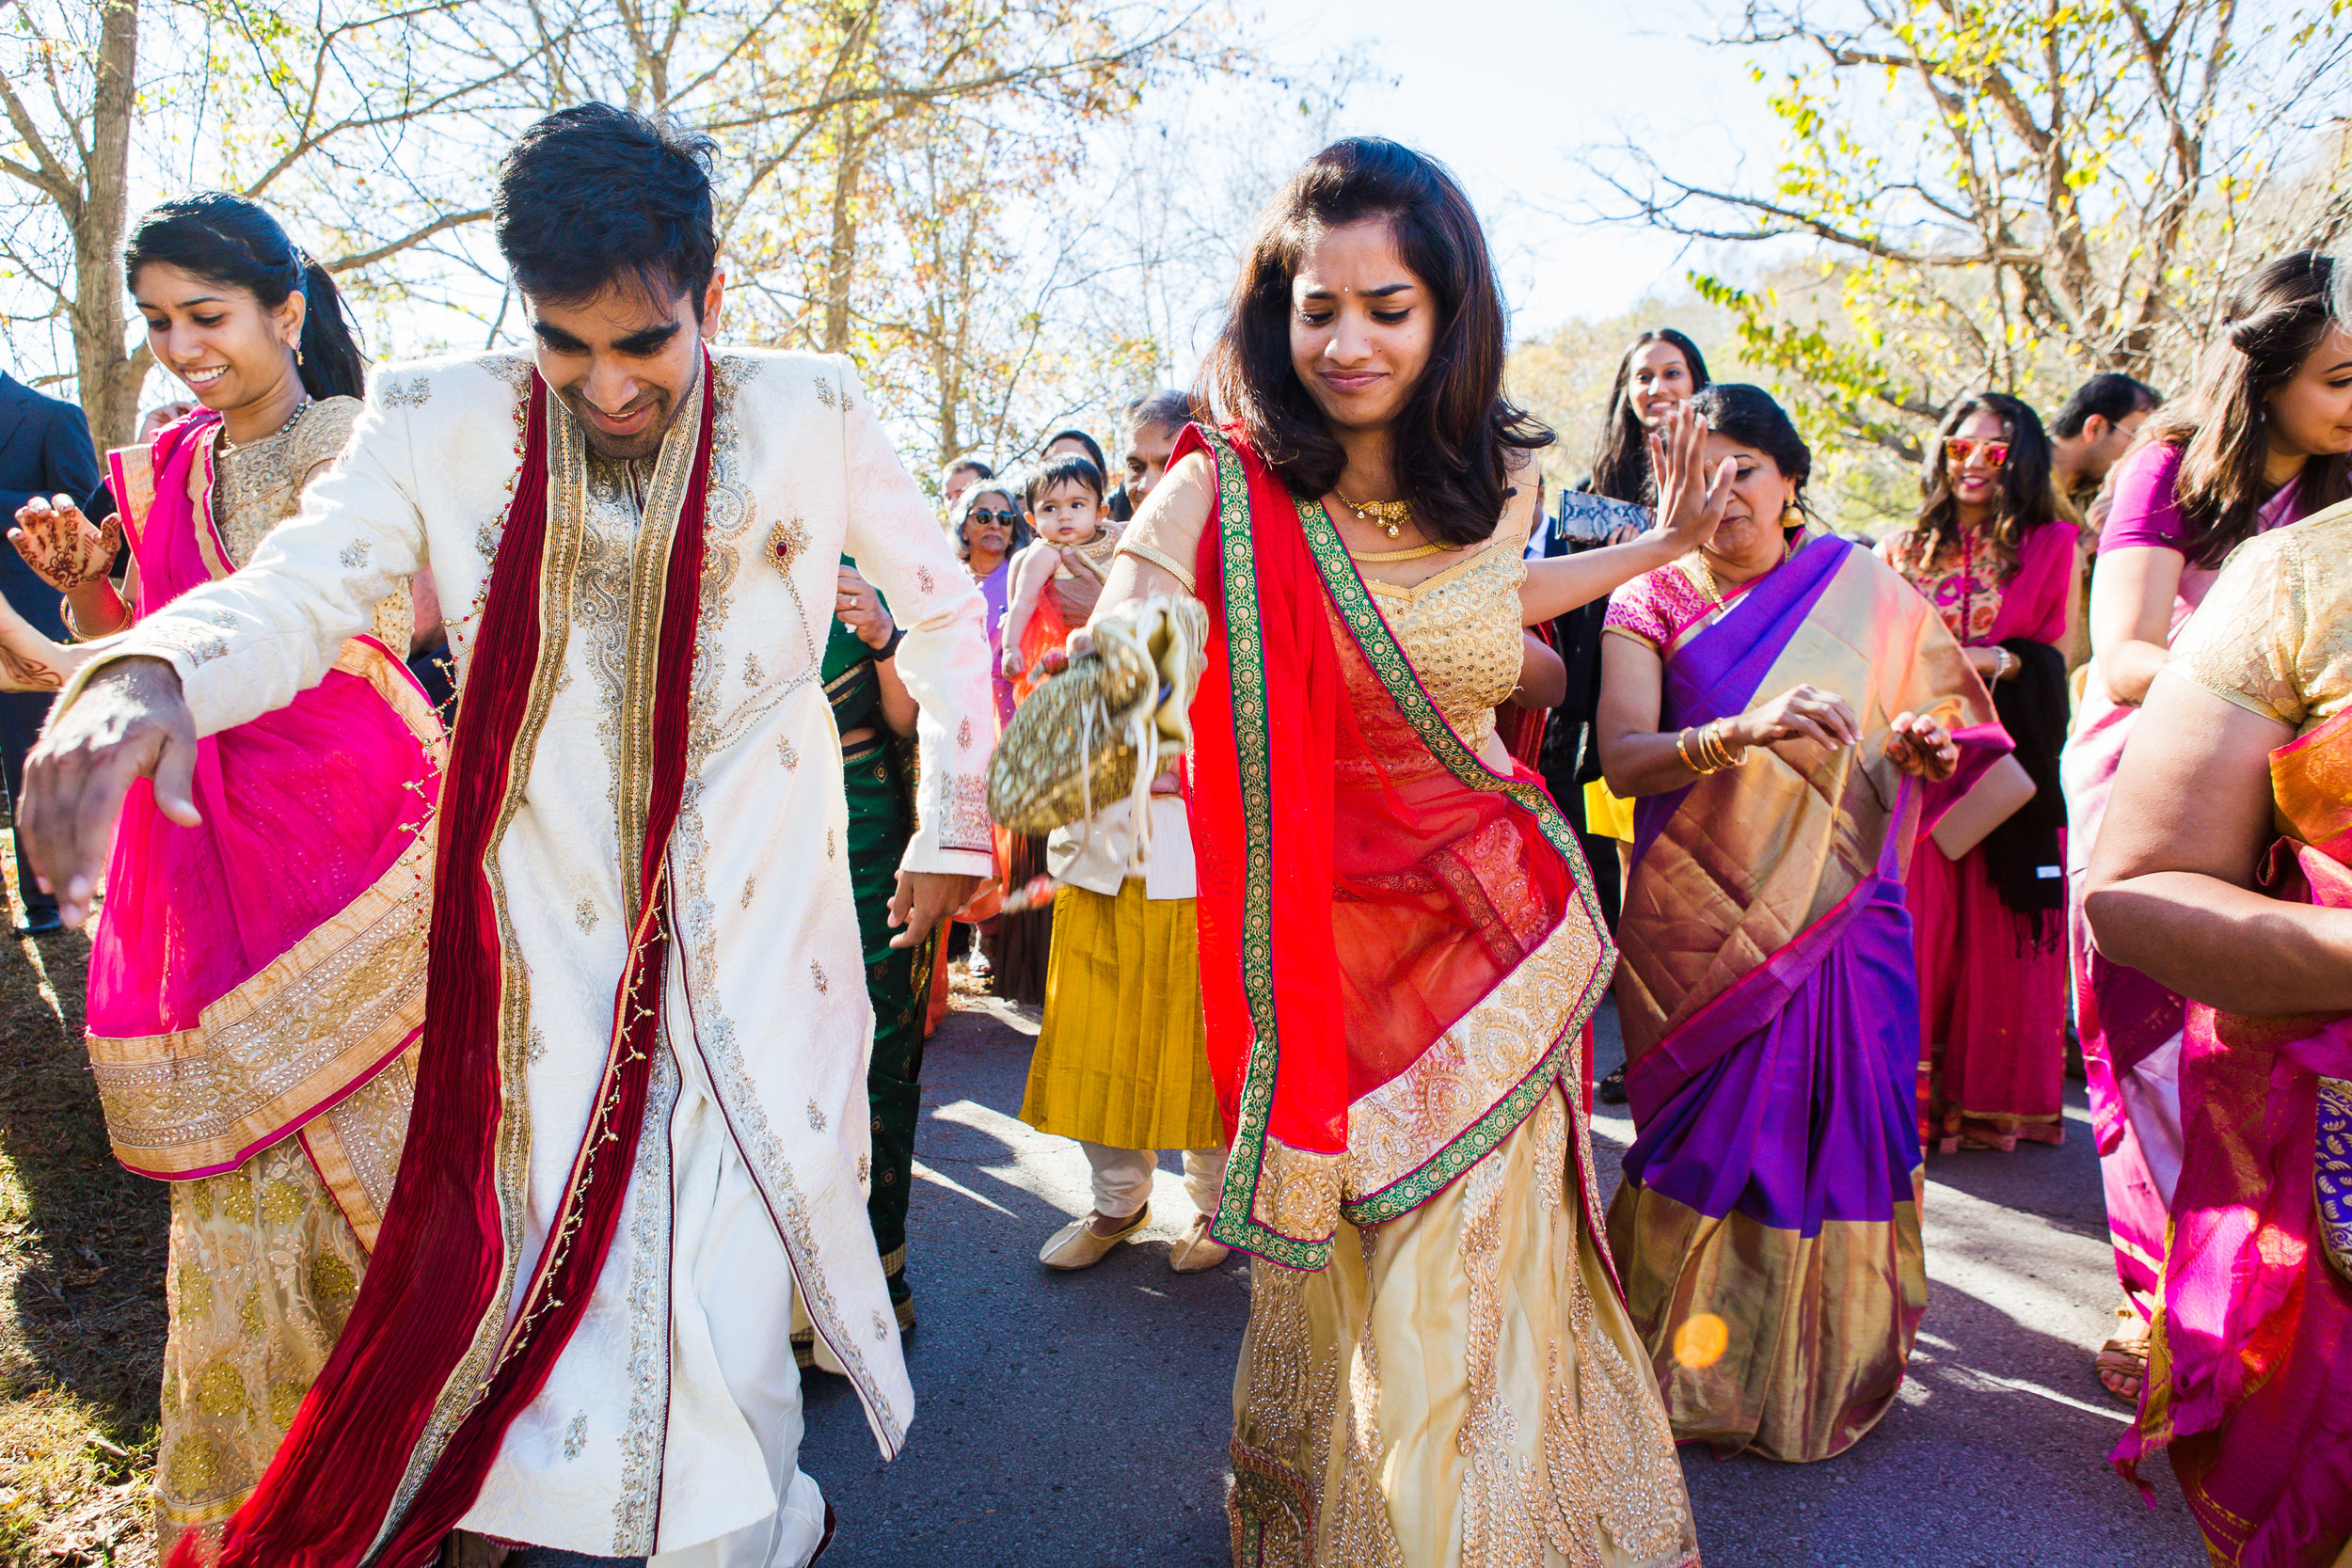 AnjaliArvind-Saturday-Baraat-Proof-3600px-046-_F5A1683.jpg